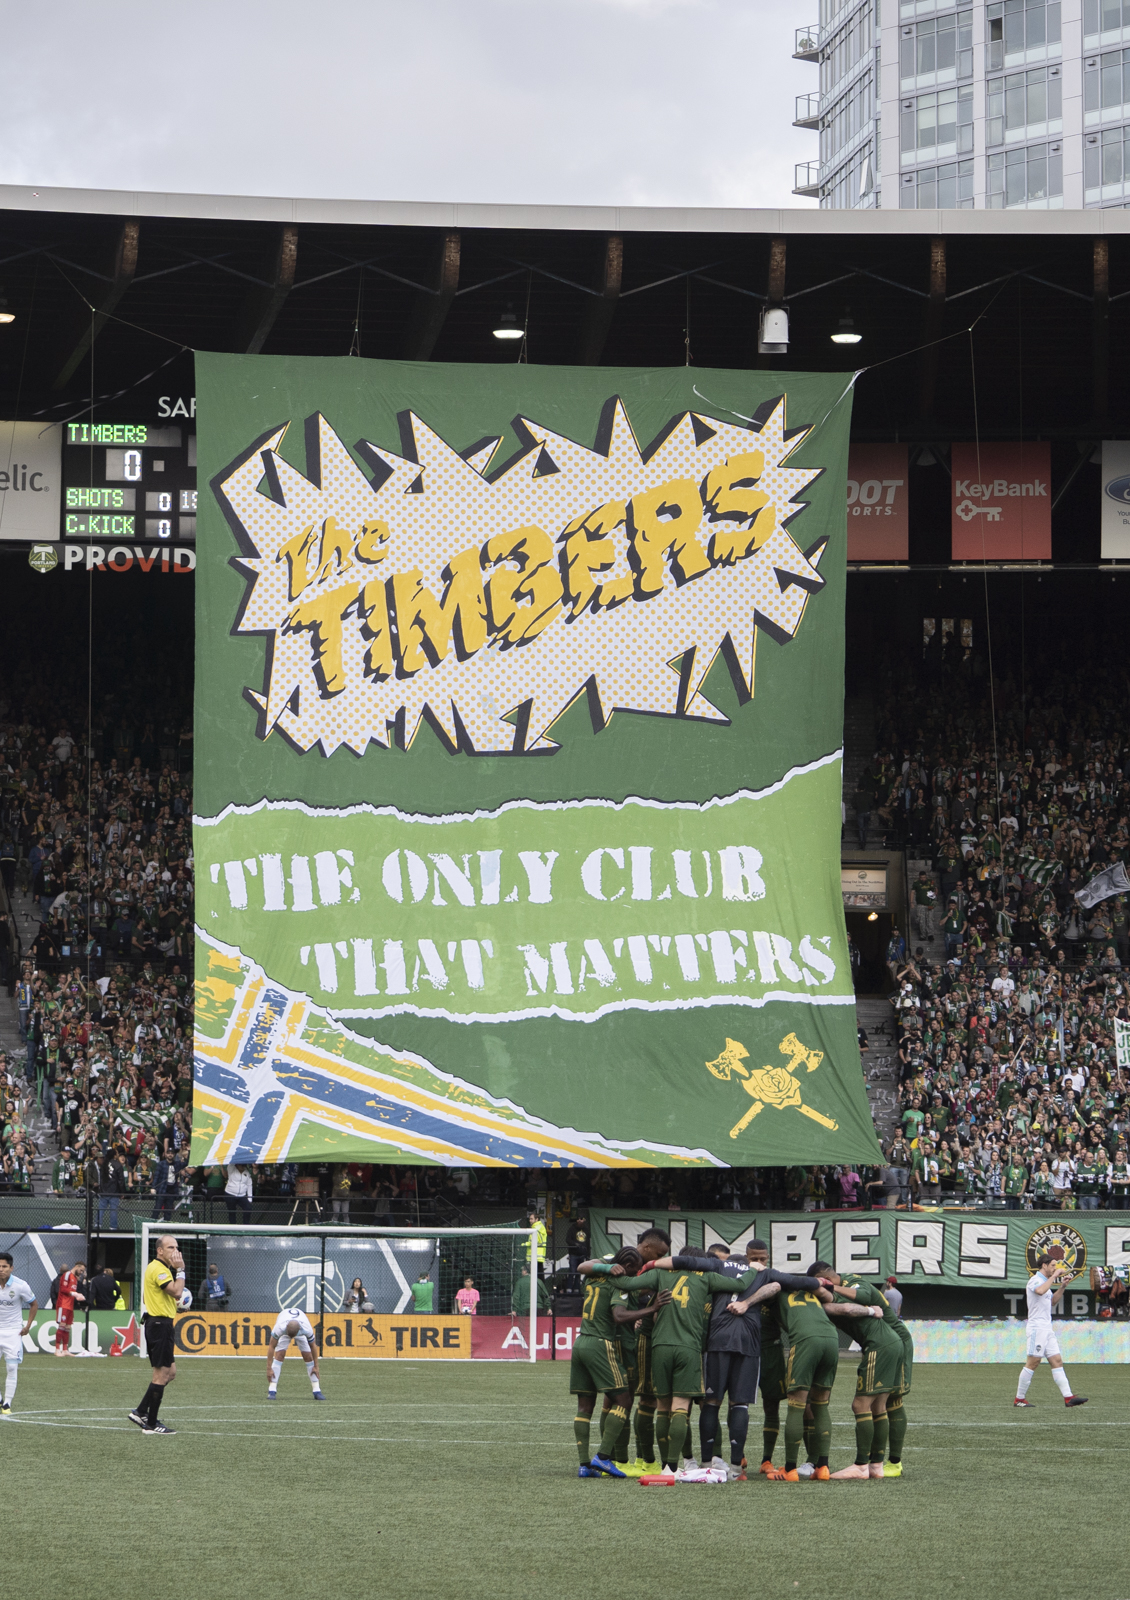 Sounders vs Timber50.jpg